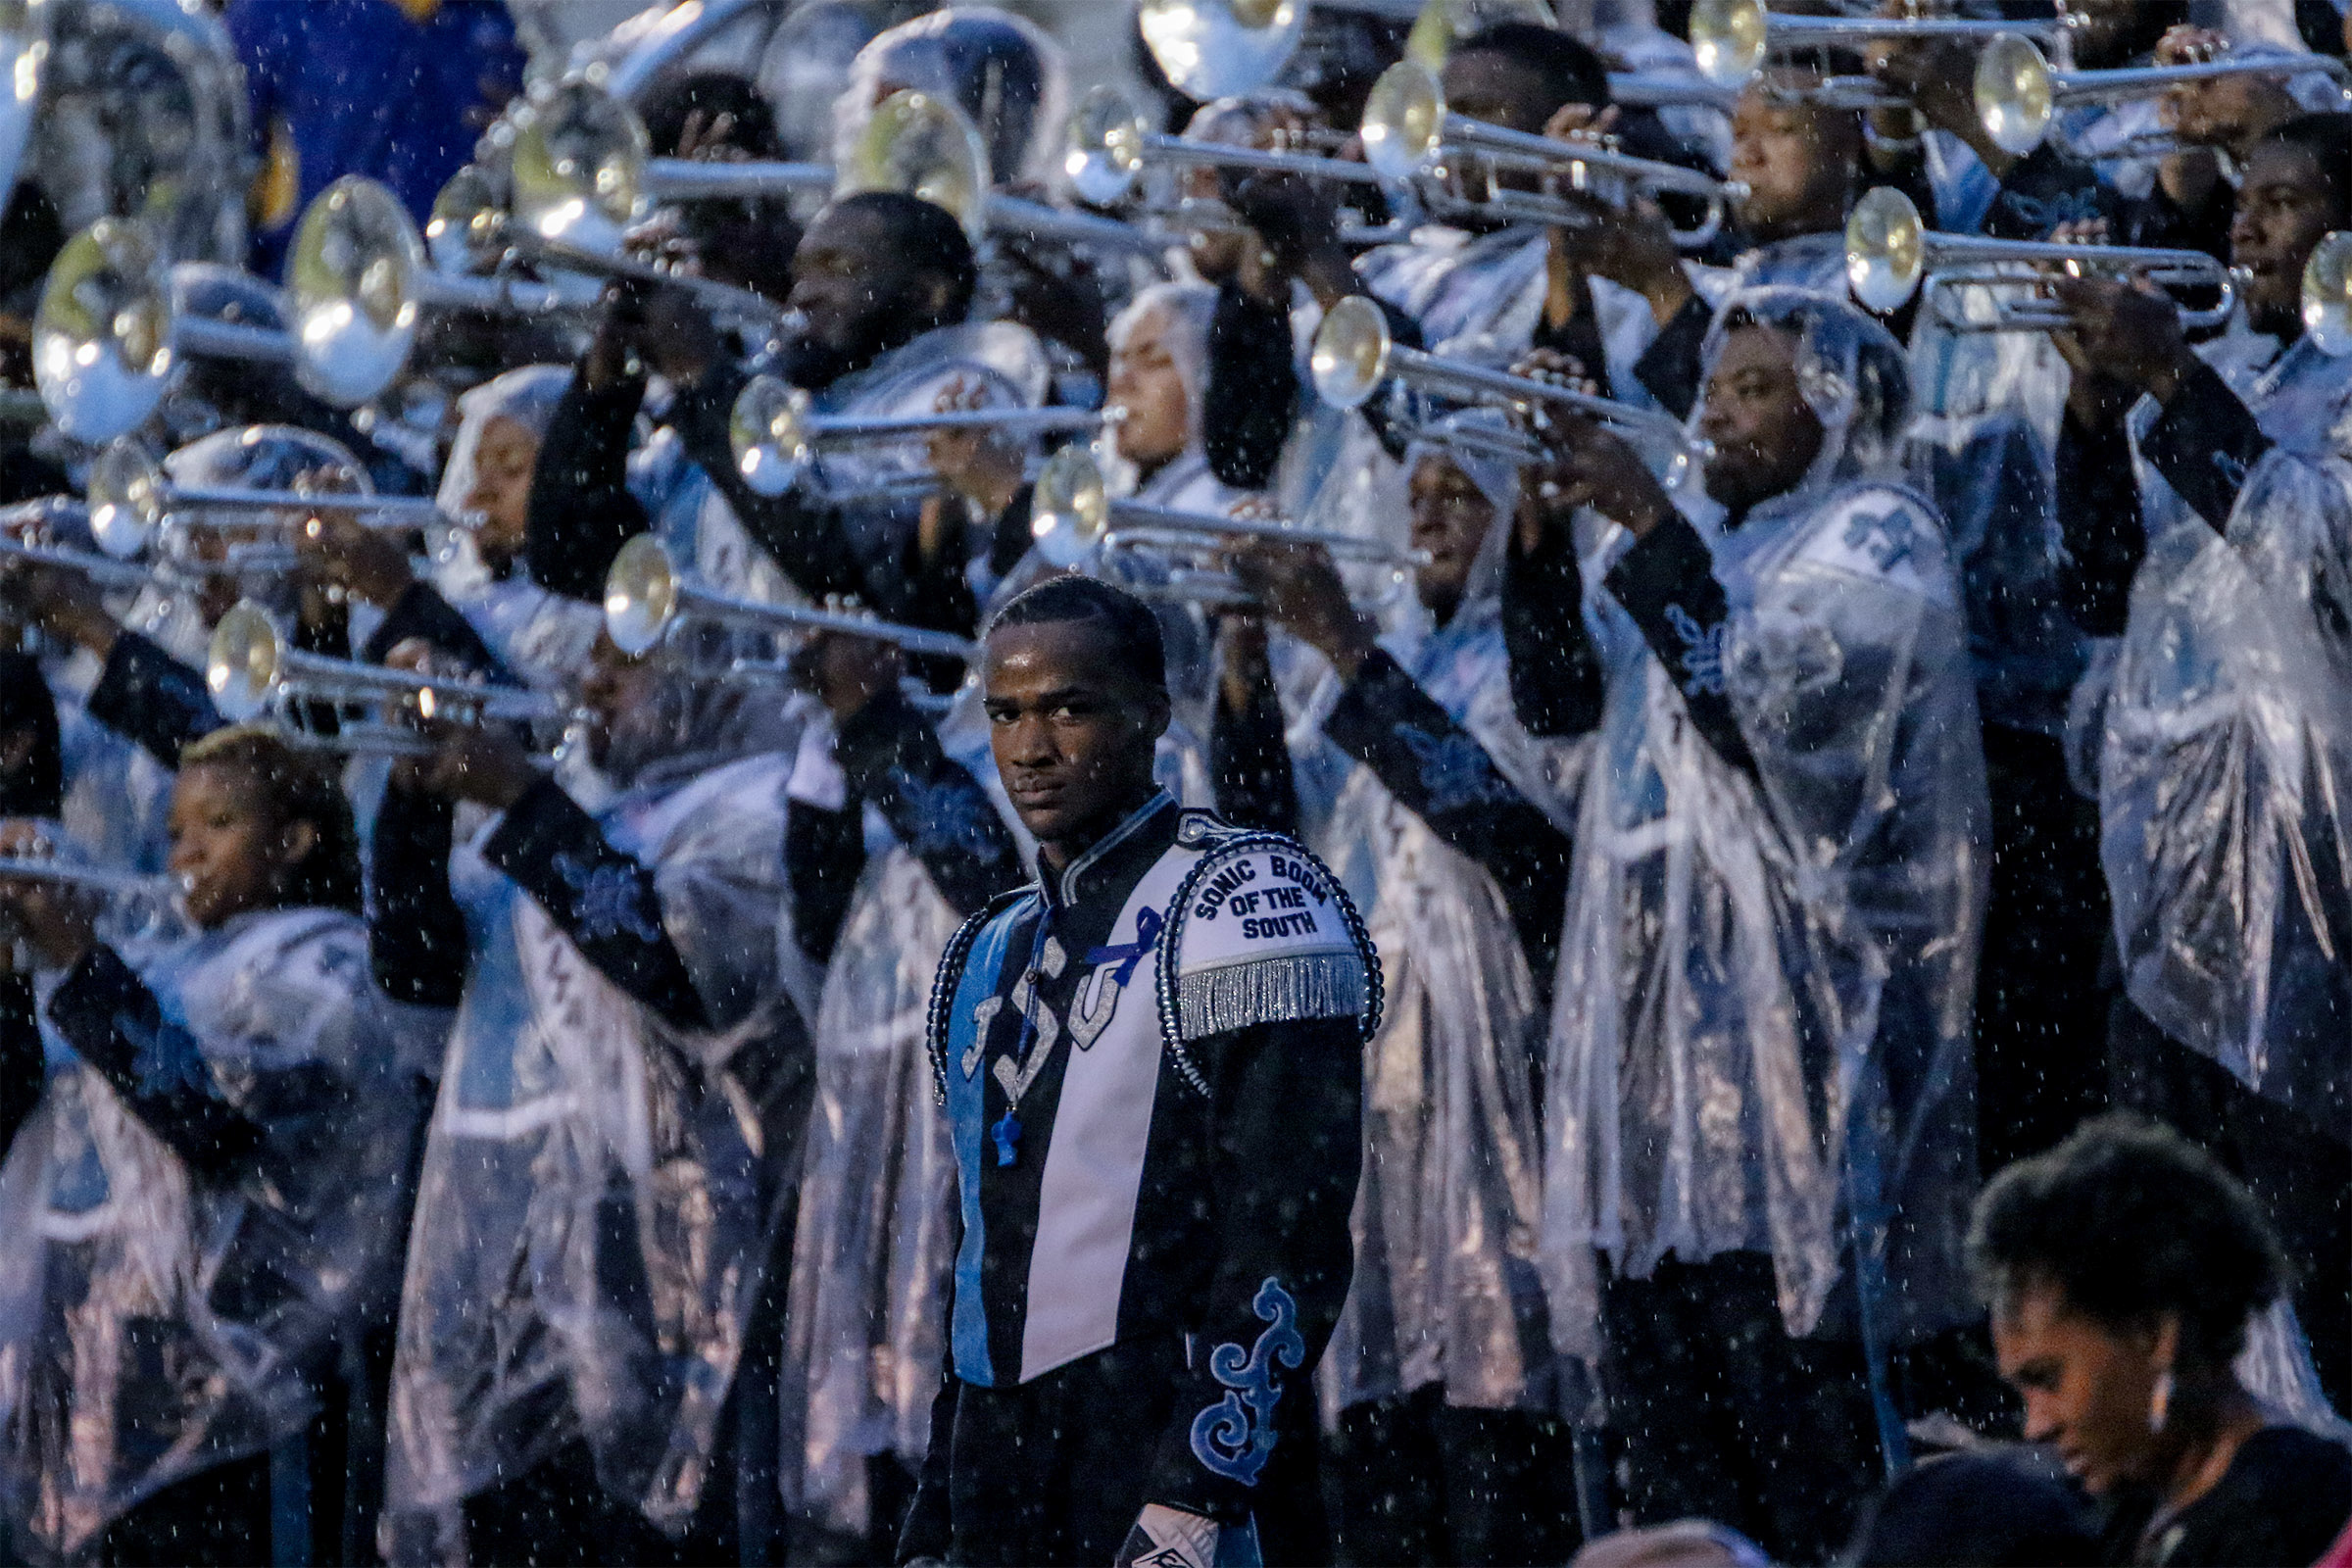 Social media associate Kentrice Rush captured lead drum major Abraham Duffie as he and members of the Sonic Boom of the South stand resolute in the rain.